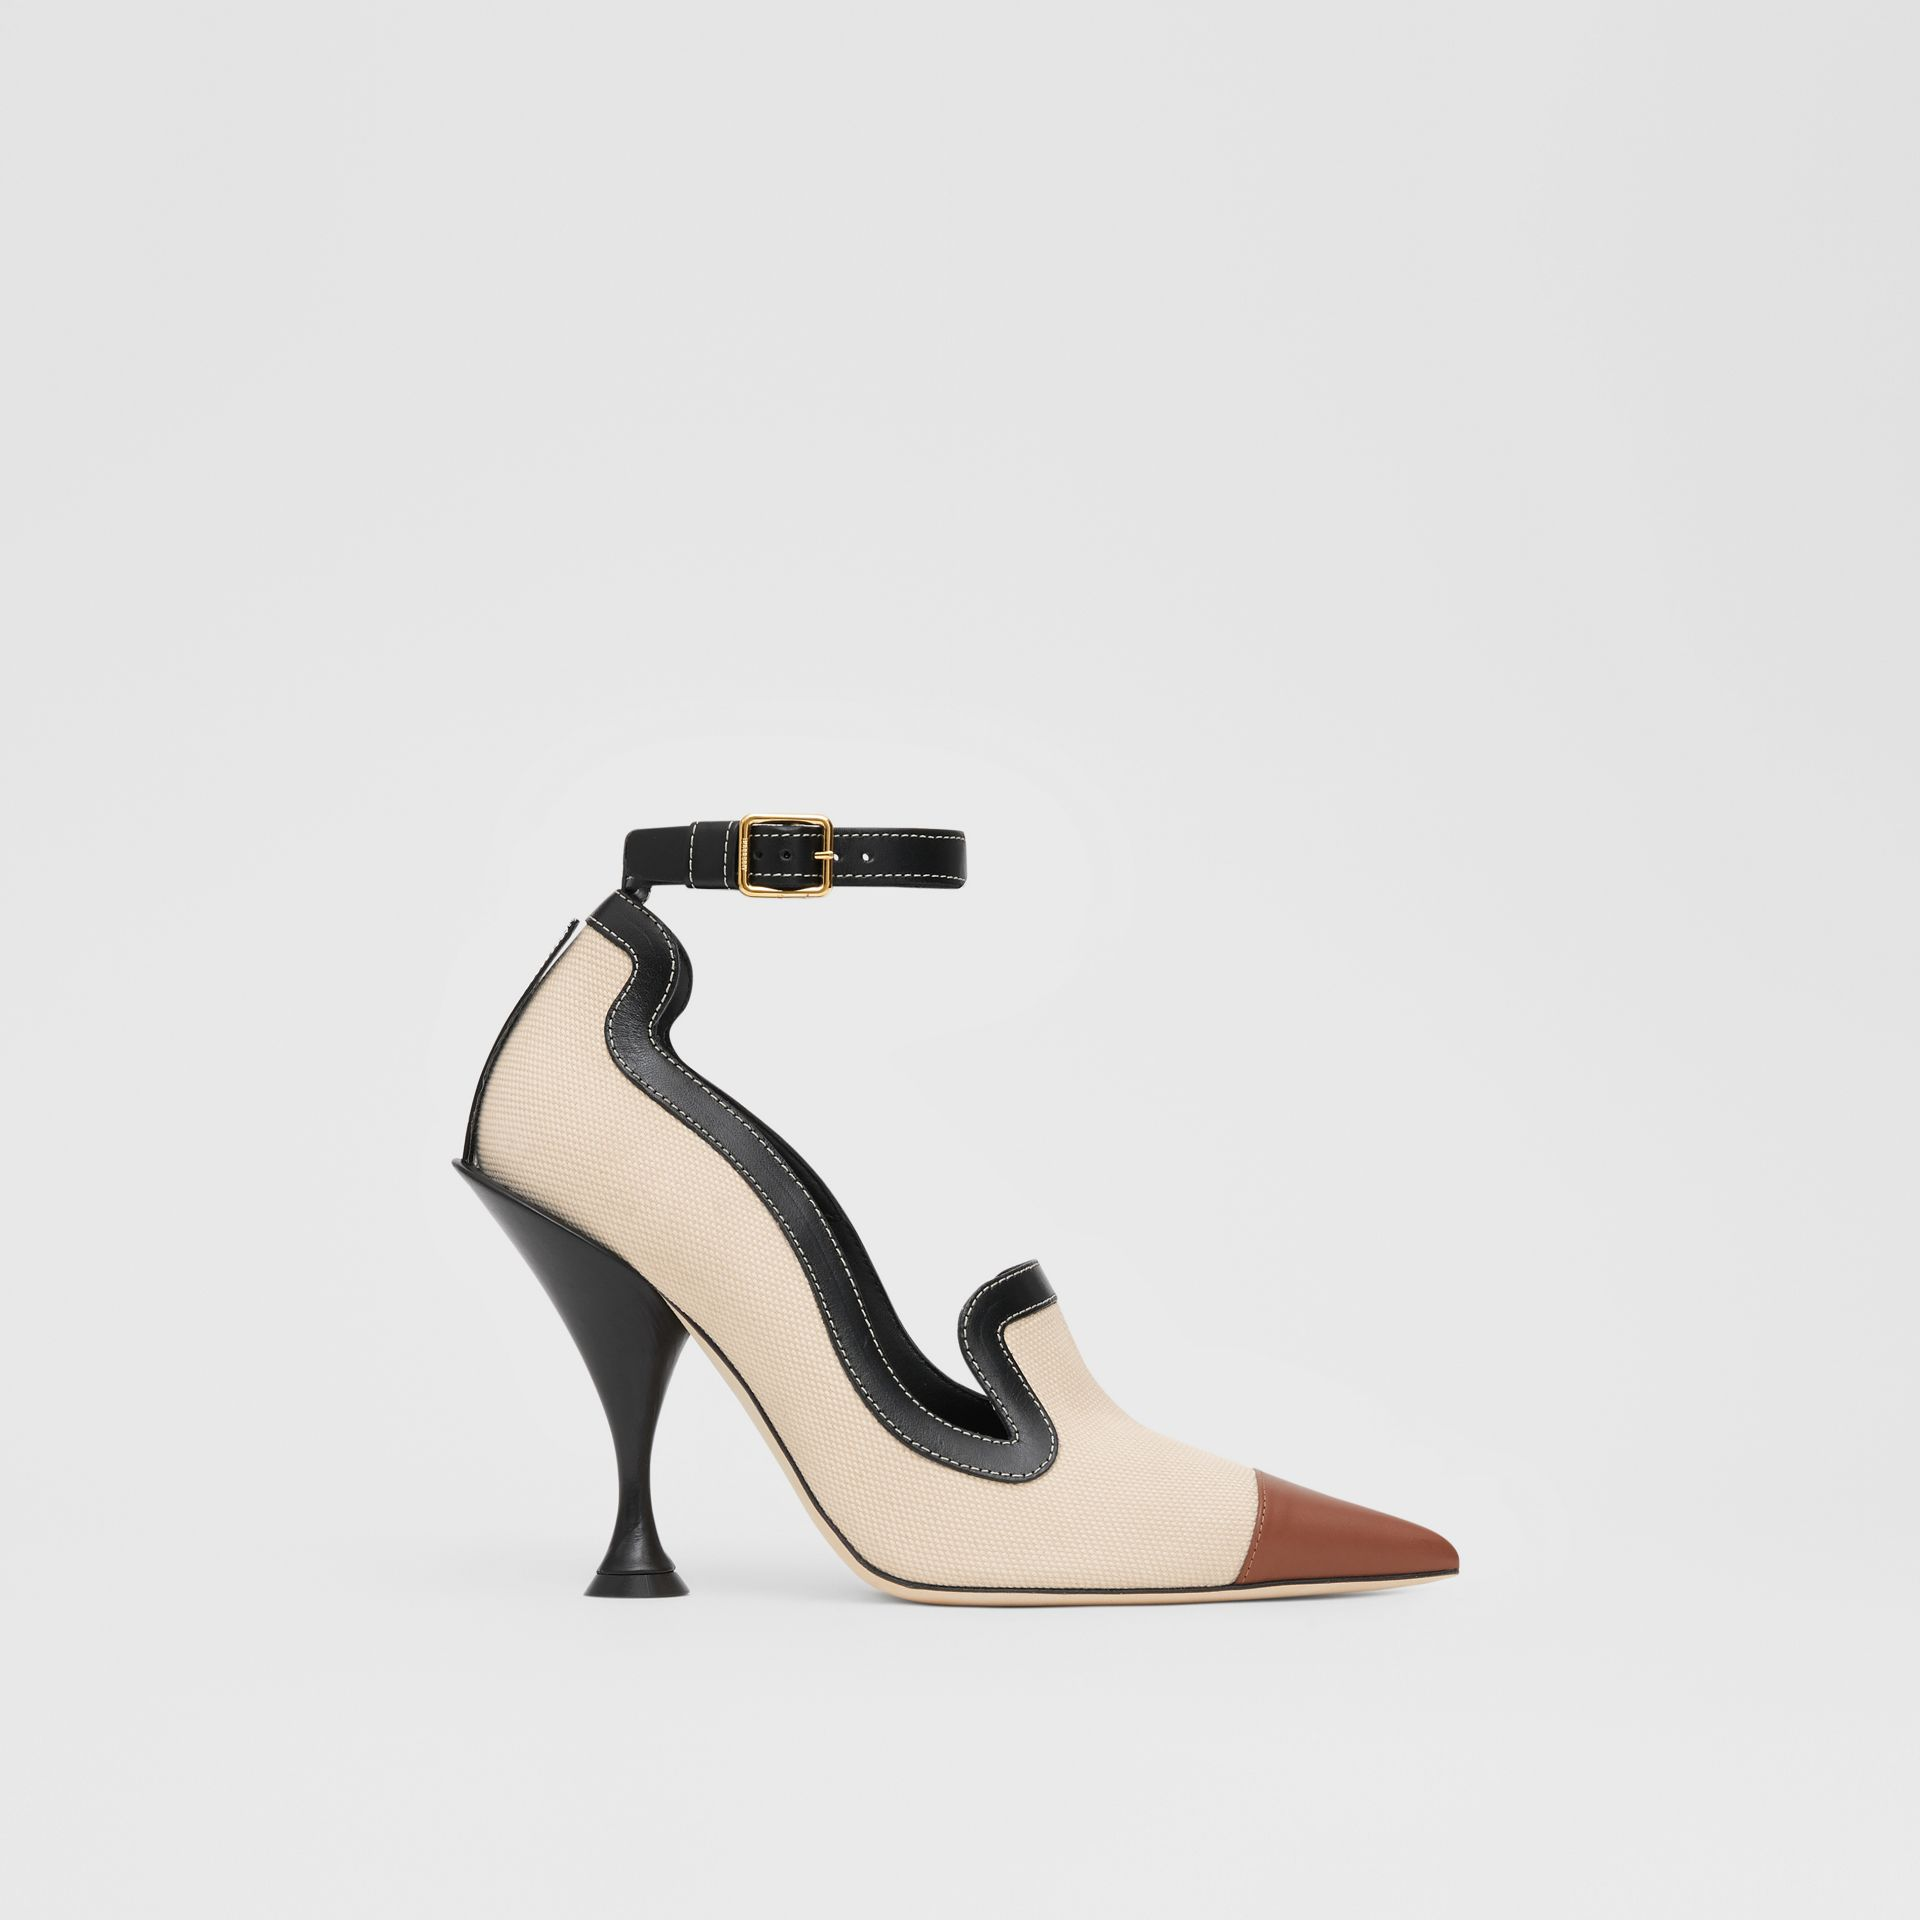 Cotton Canvas and Leather Point-toe Pumps in Natural/black - Women | Burberry - gallery image 5